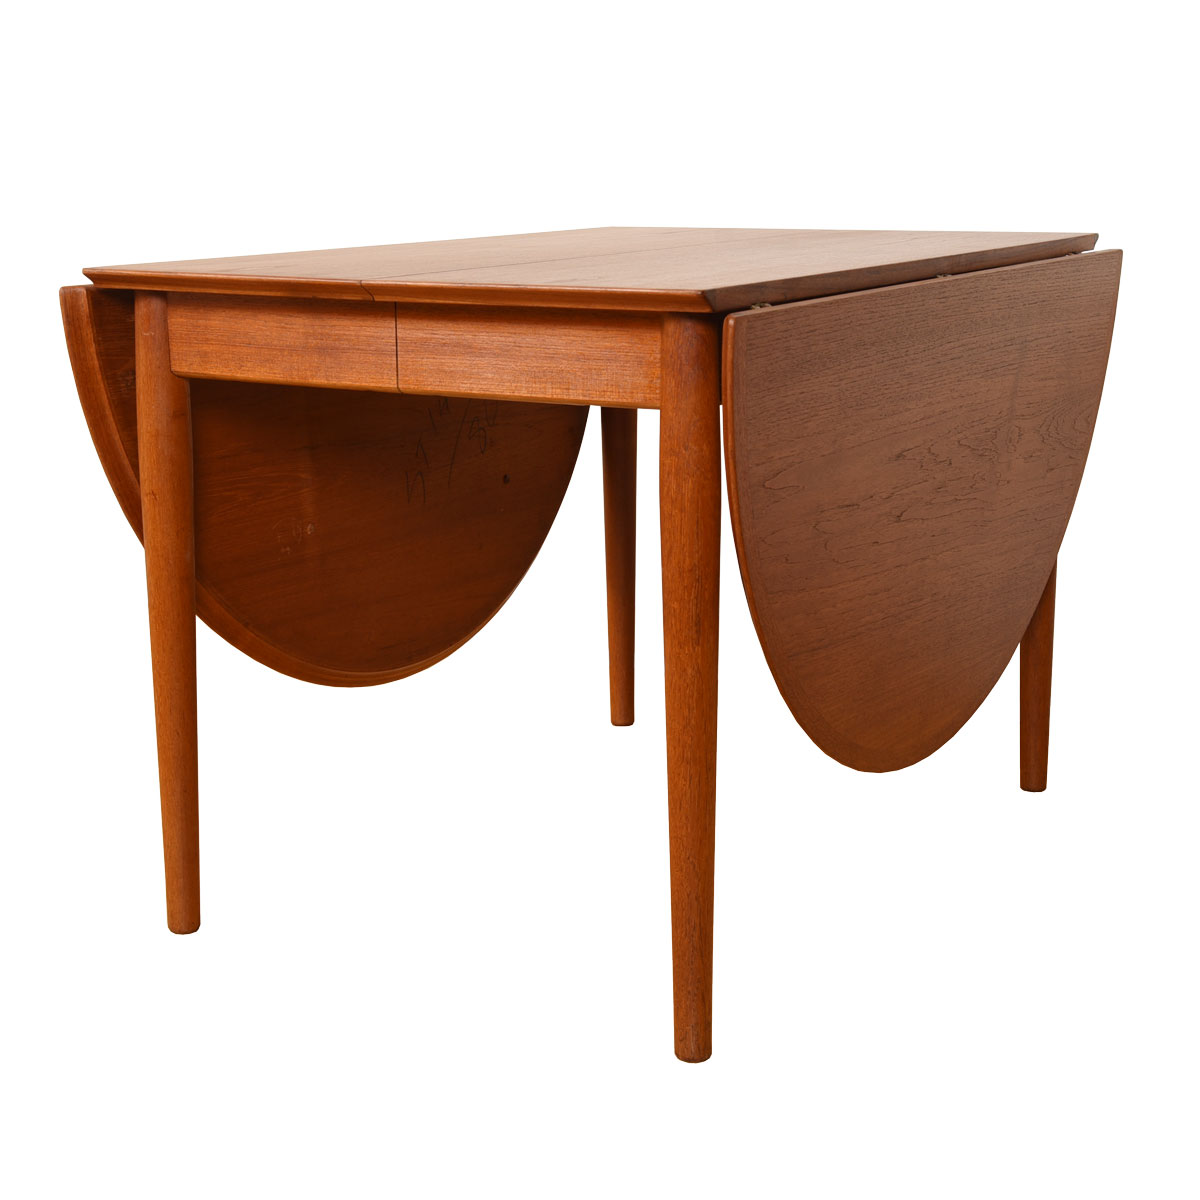 Super Versatile & Expanding — Danish Teak Arne Vodder Round Drop-Leaf Dining Table